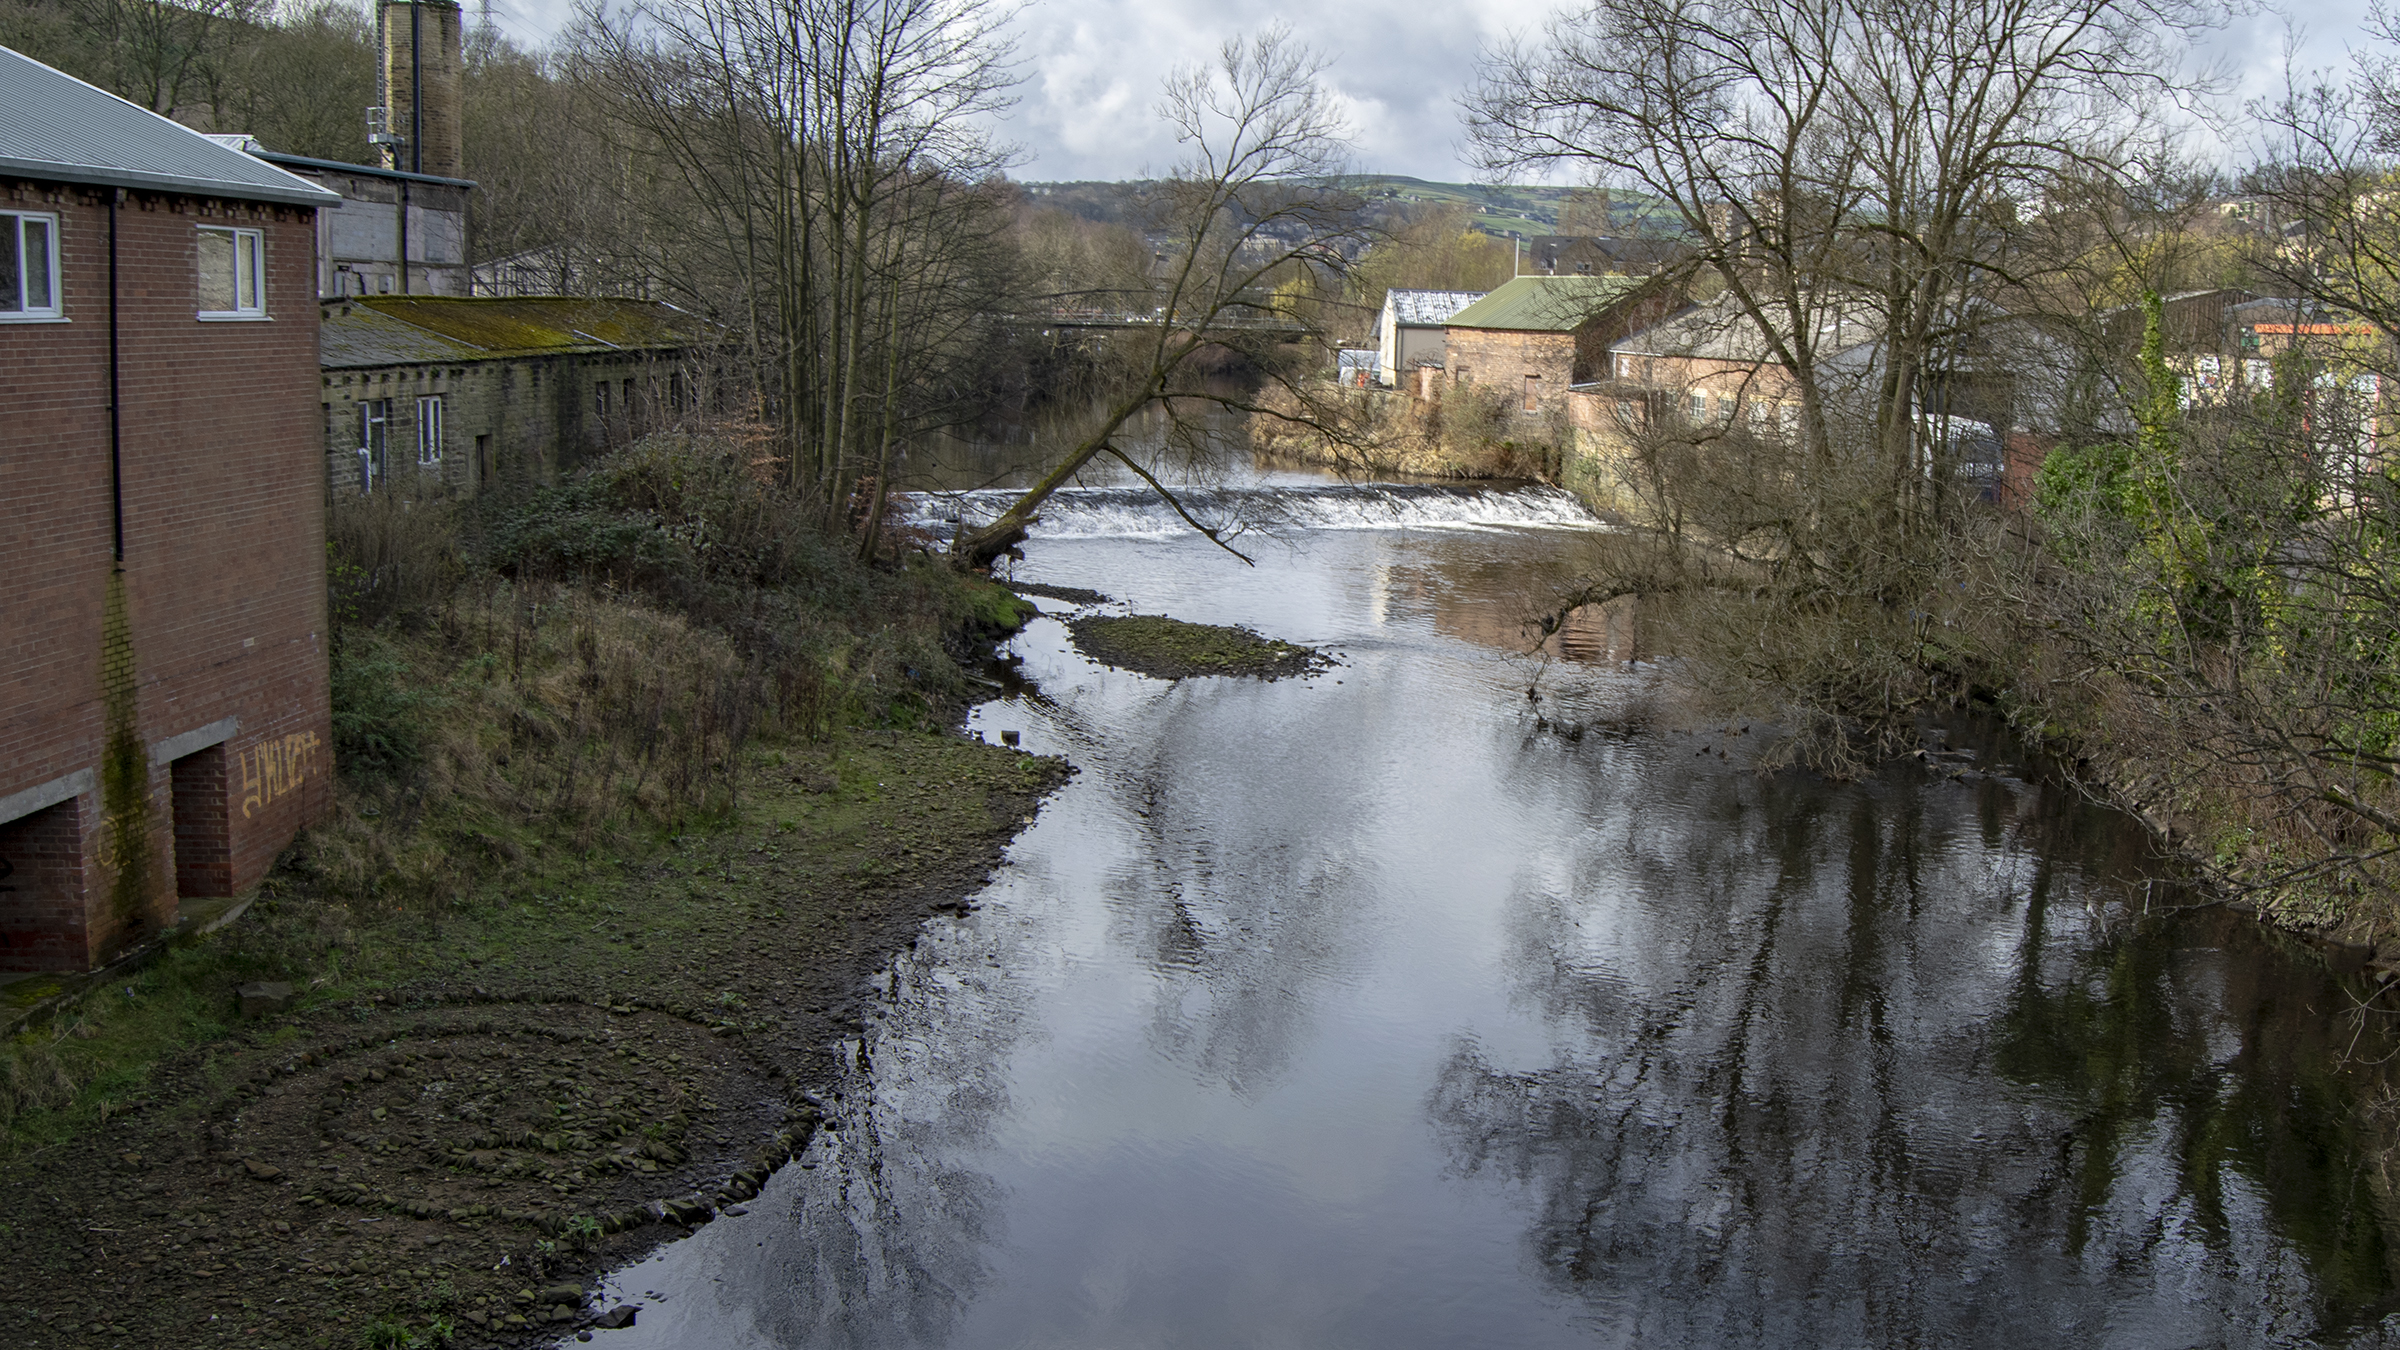 River Calder at Mearclough, Sowerby Bridge